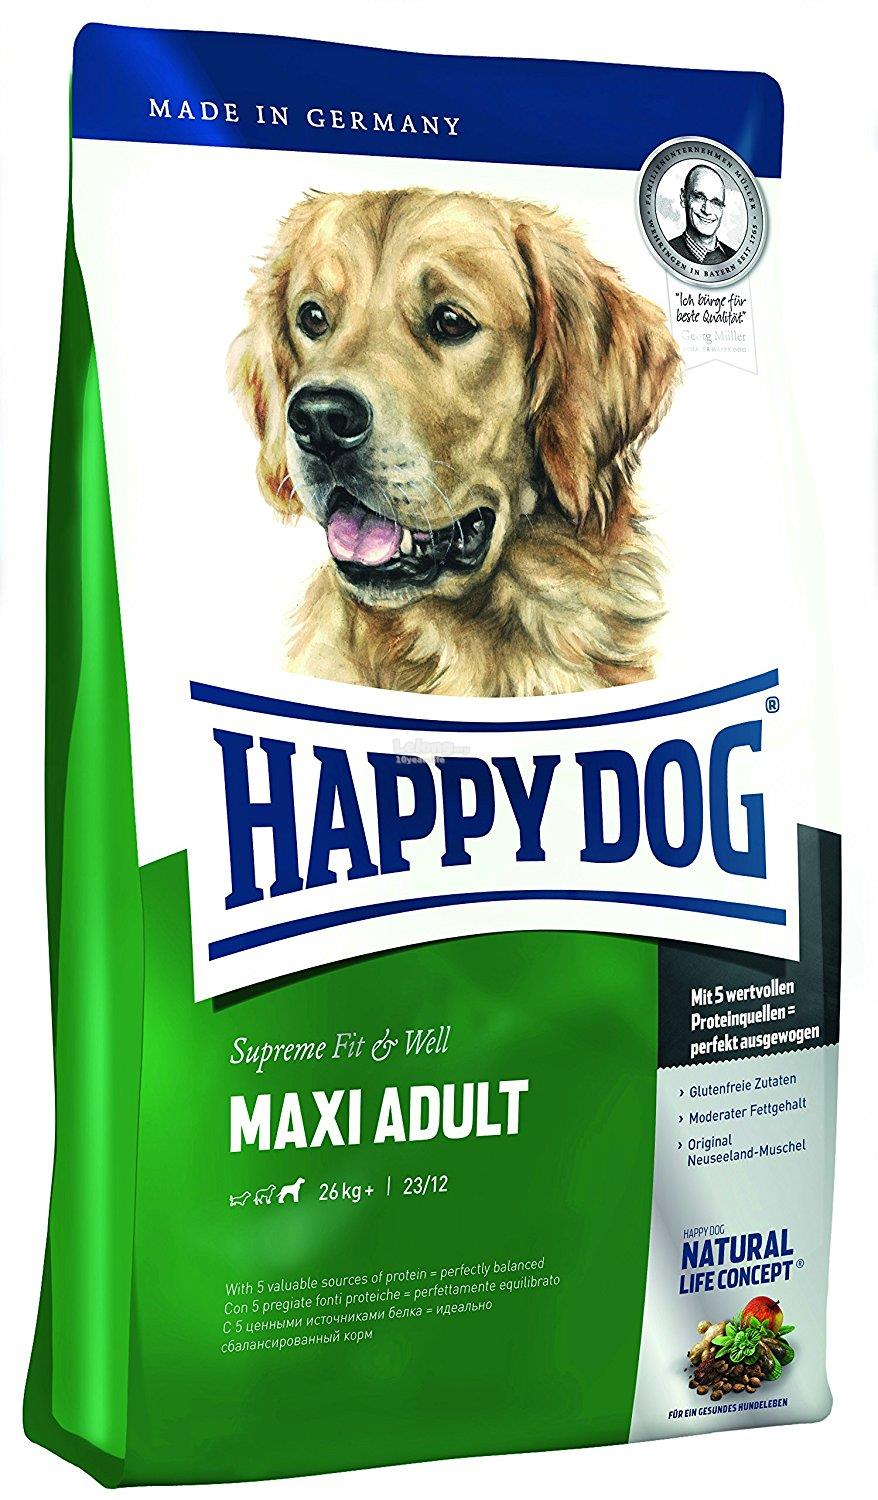 happy dog dry dog food maxi adult 15 end 4 7 2017 10 15 pm. Black Bedroom Furniture Sets. Home Design Ideas